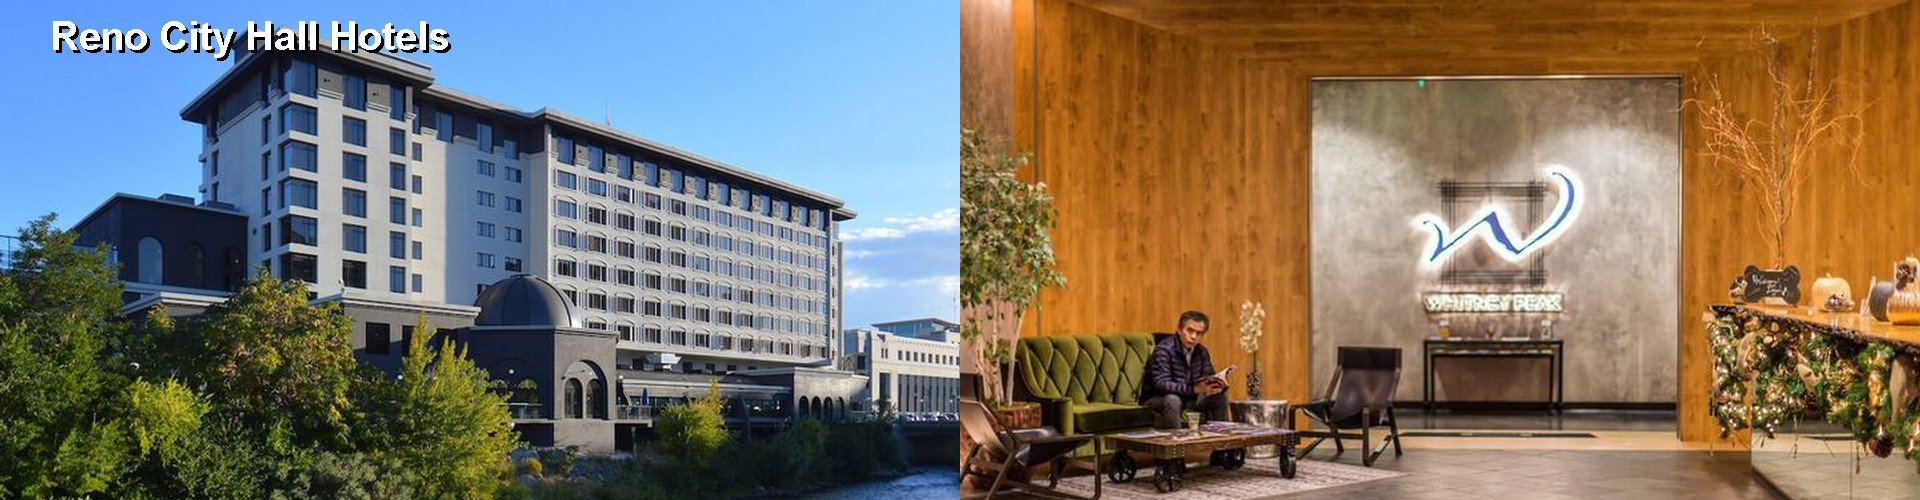 5 Best Hotels near Reno City Hall